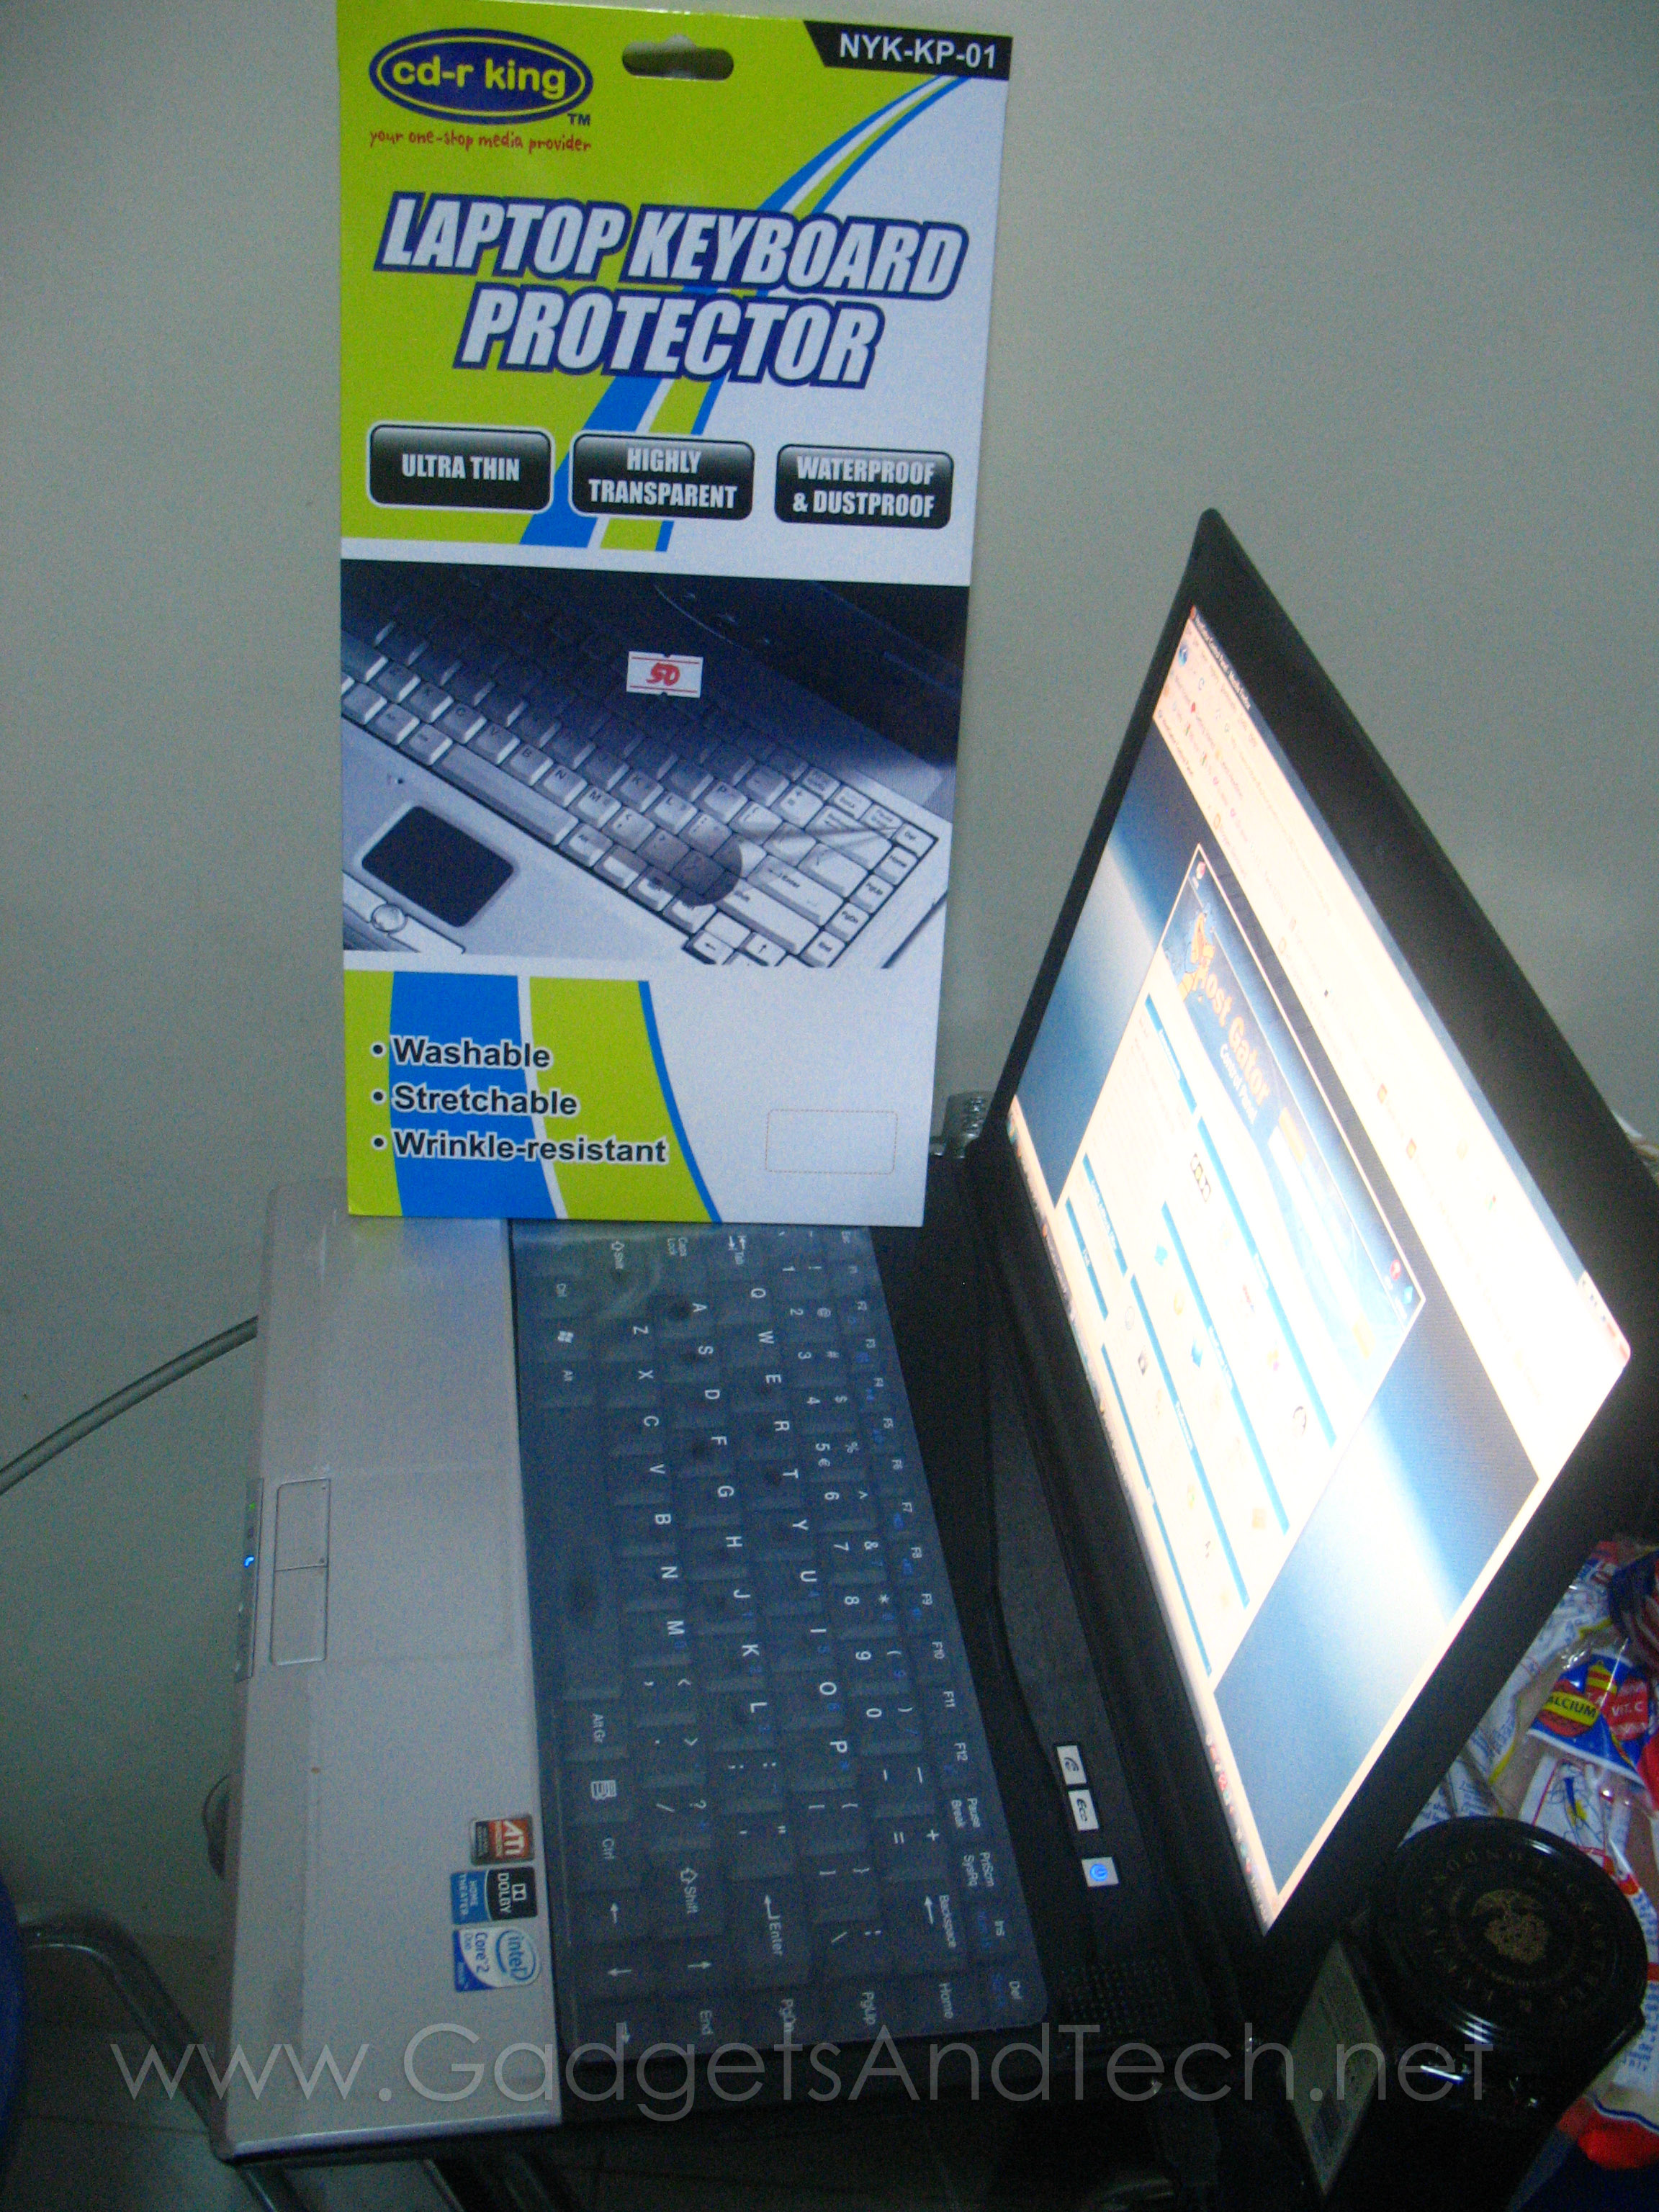 cheap laptop keyboard protector at cd r king gadgets and tech ph. Black Bedroom Furniture Sets. Home Design Ideas